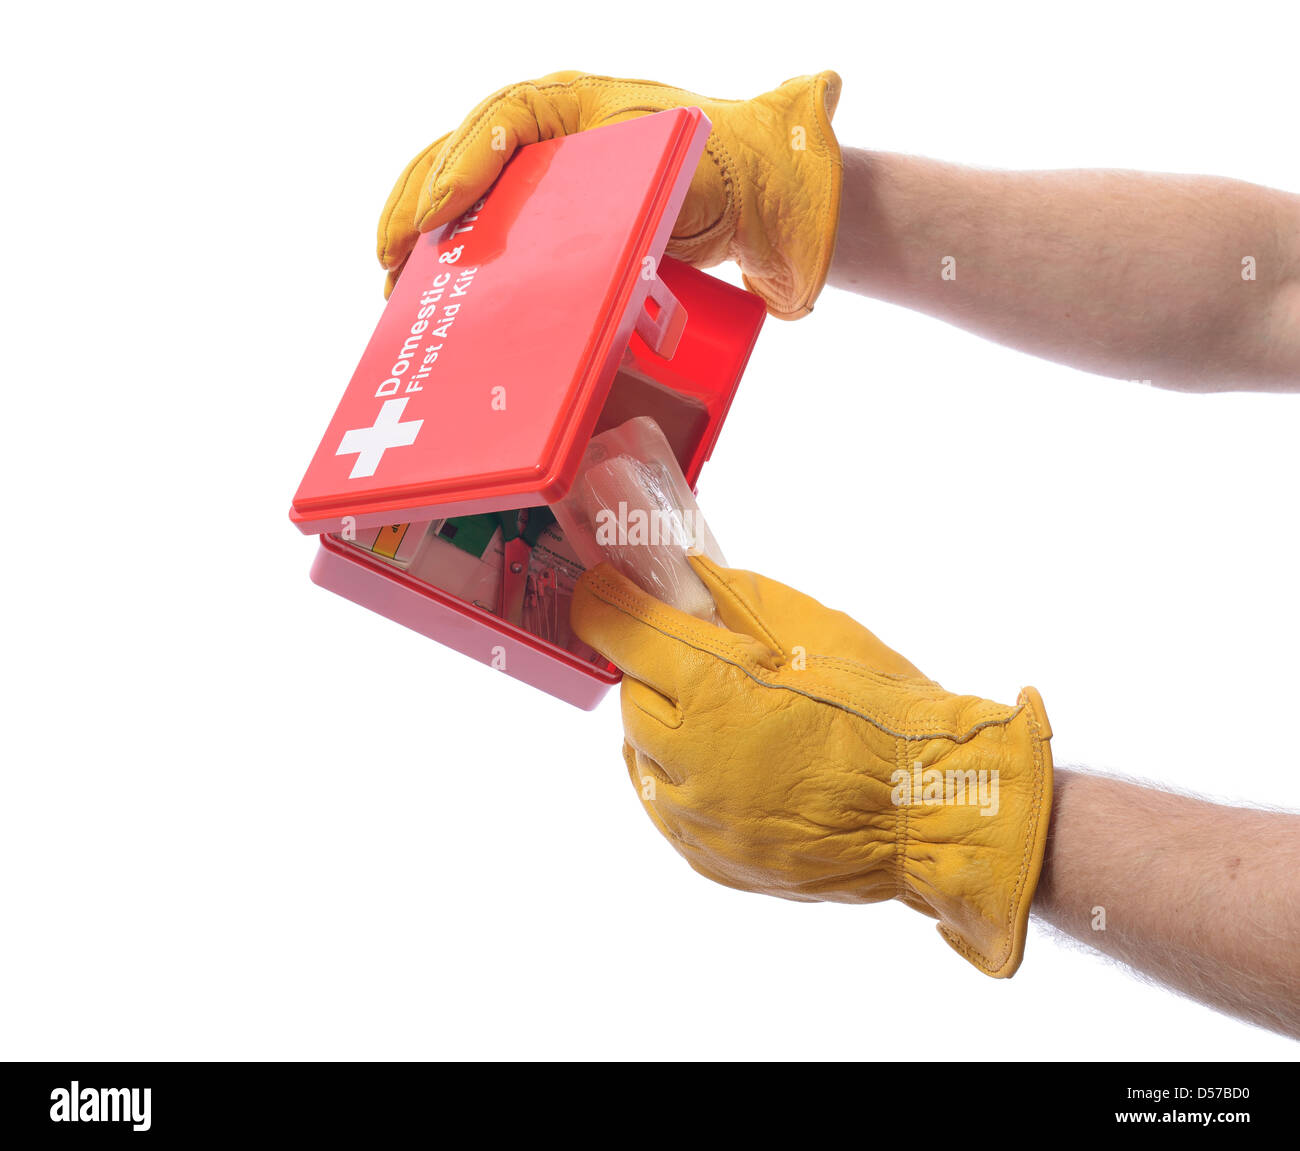 construction worker with glove taking a bandage from a first aid box - Stock Image